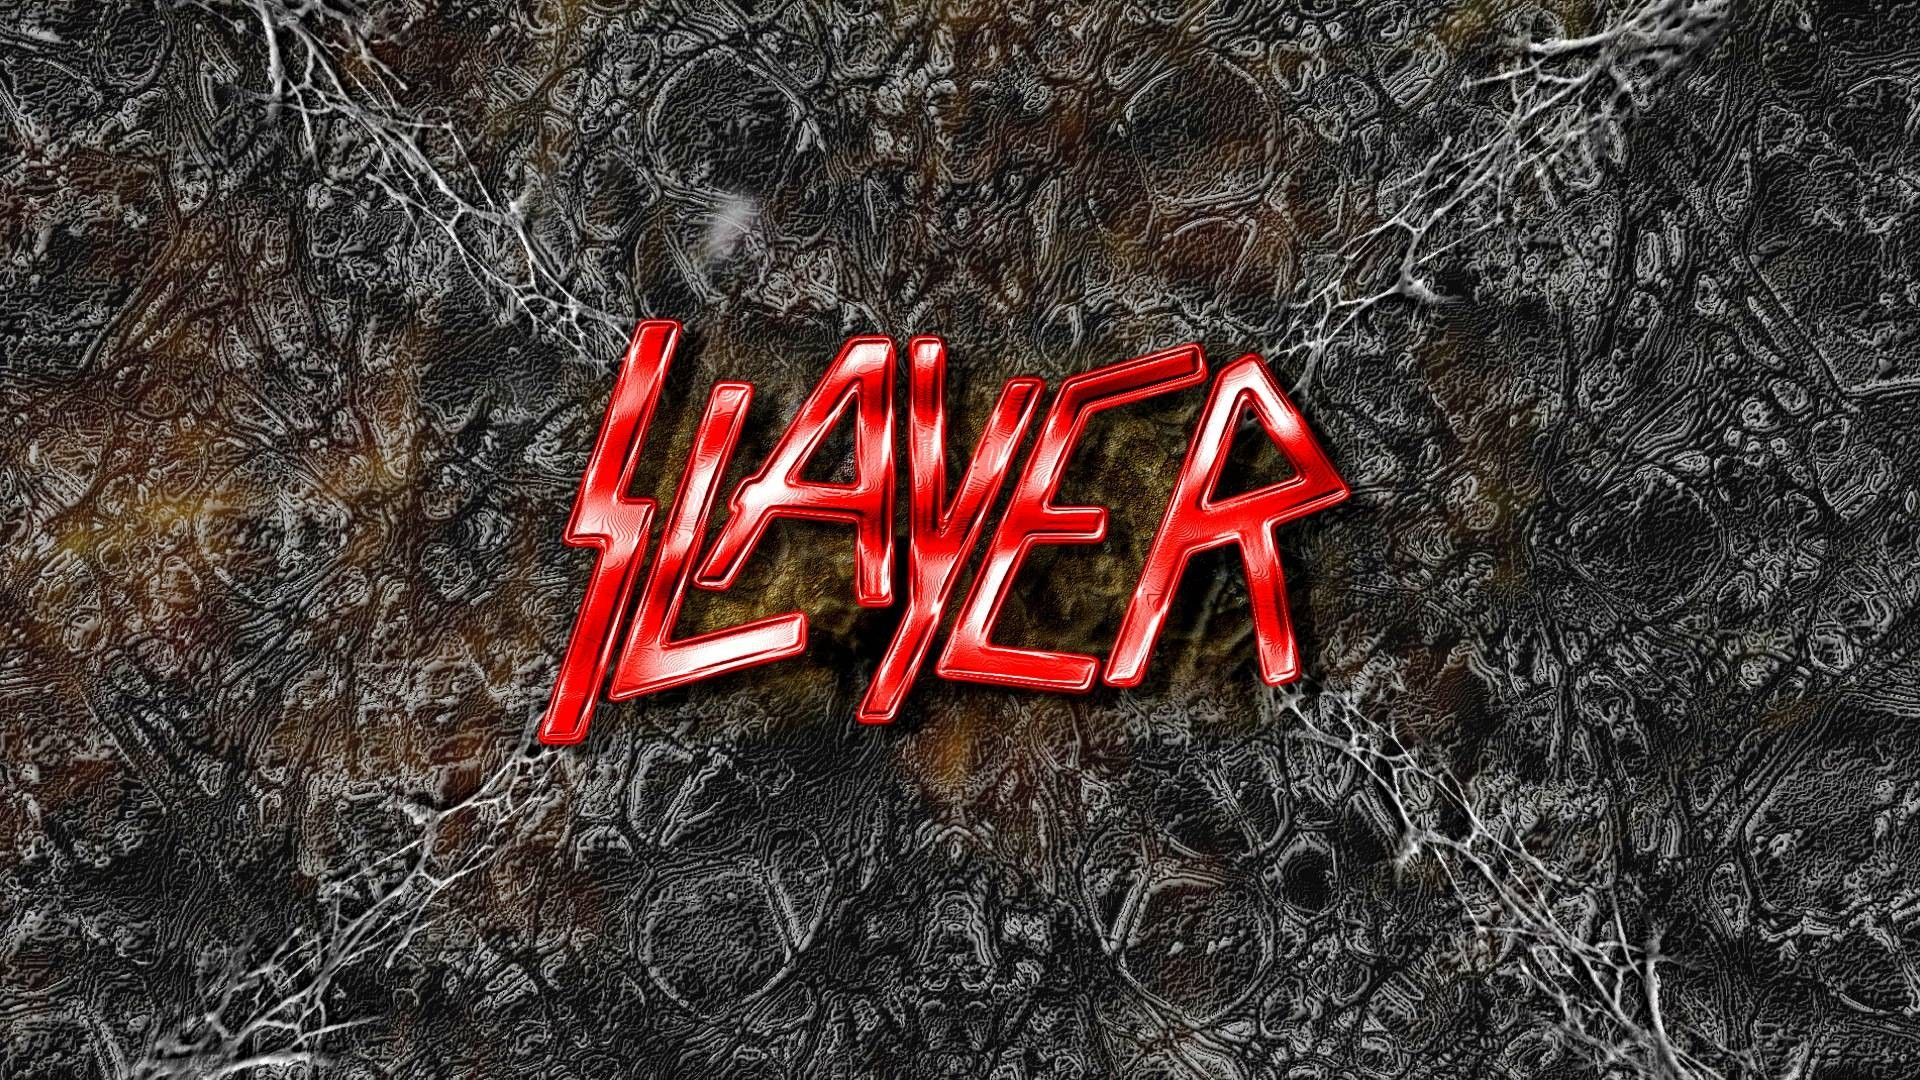 Slayer wallpaper ·① Download free cool HD wallpapers for ...